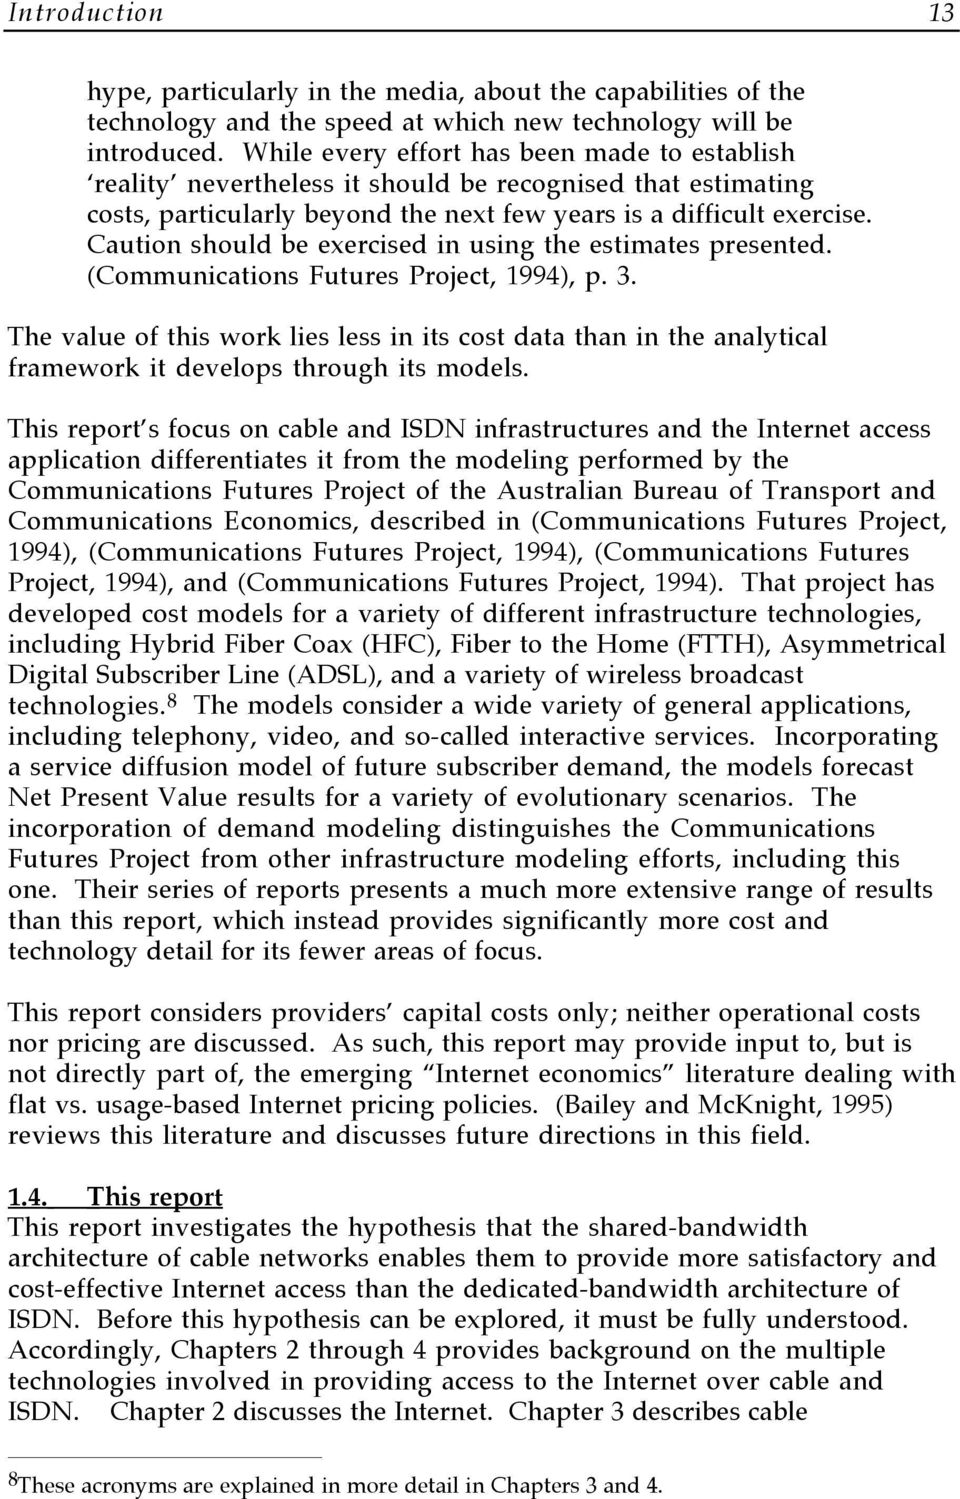 Caution should be exercised in using the estimates presented. (Communications Futures Project, 1994), p. 3.